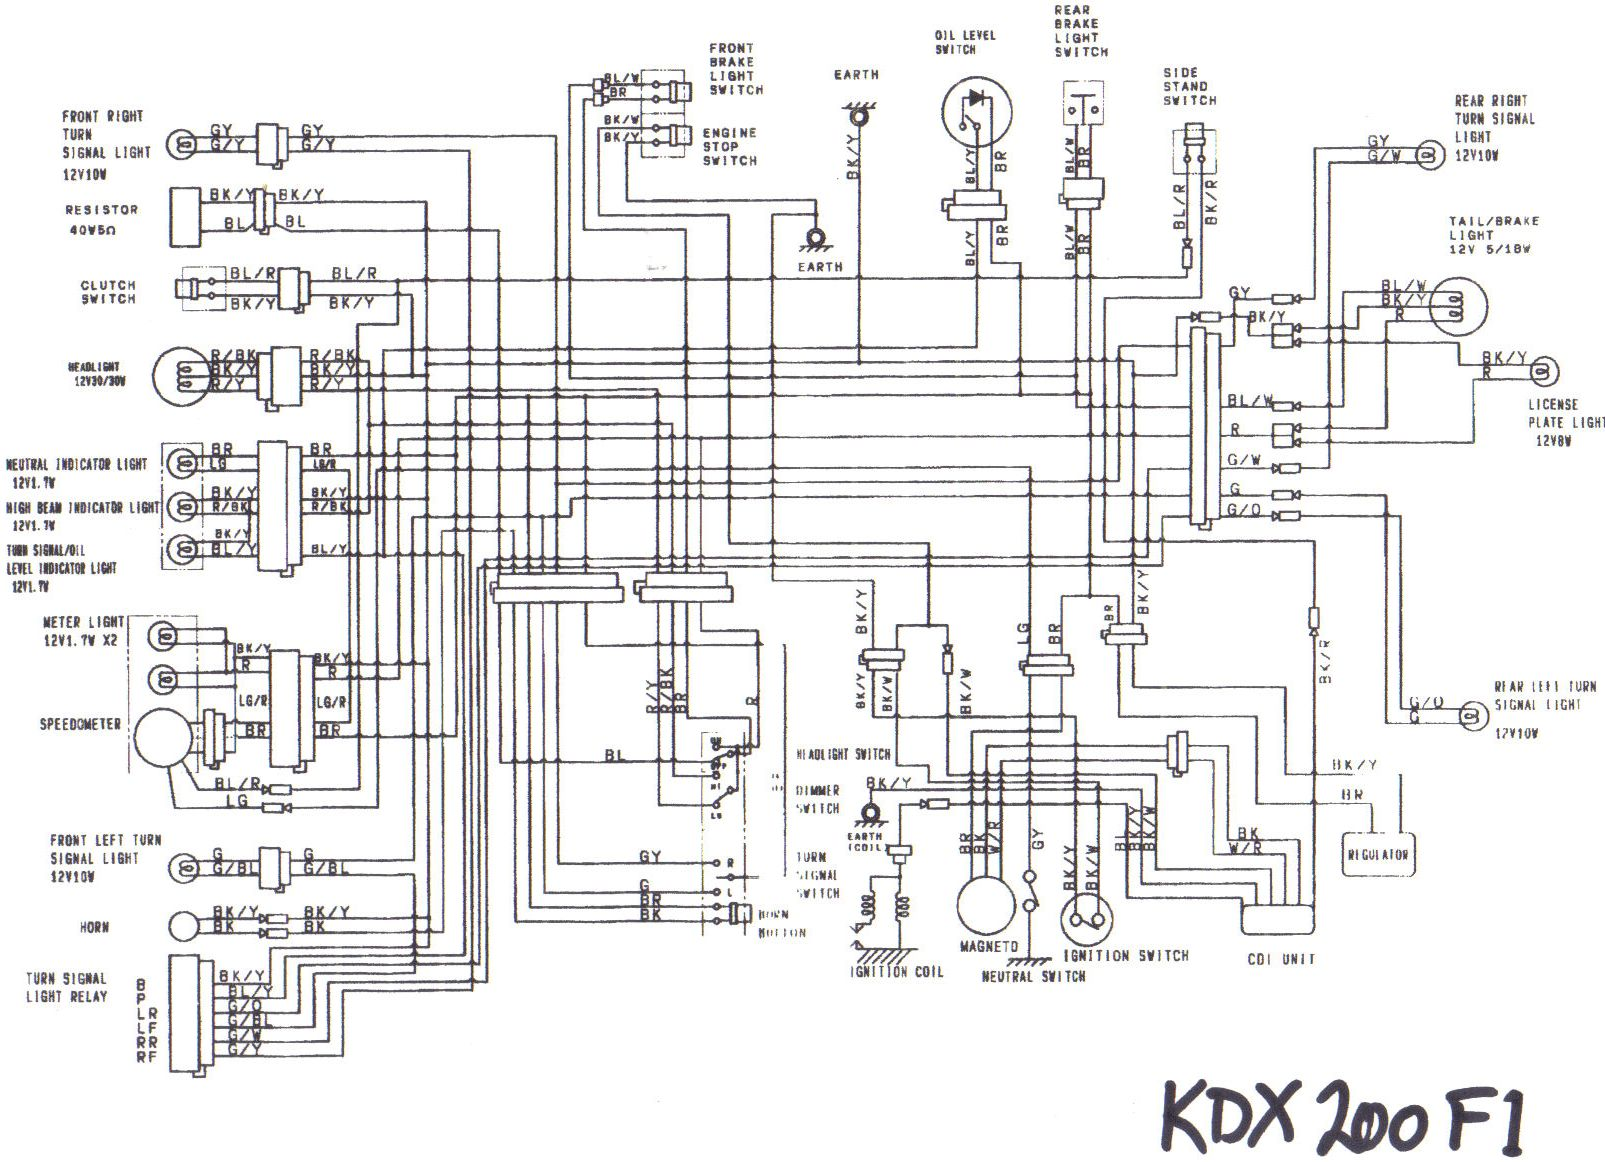 Require Wiring Diagram 91 Kdx 200